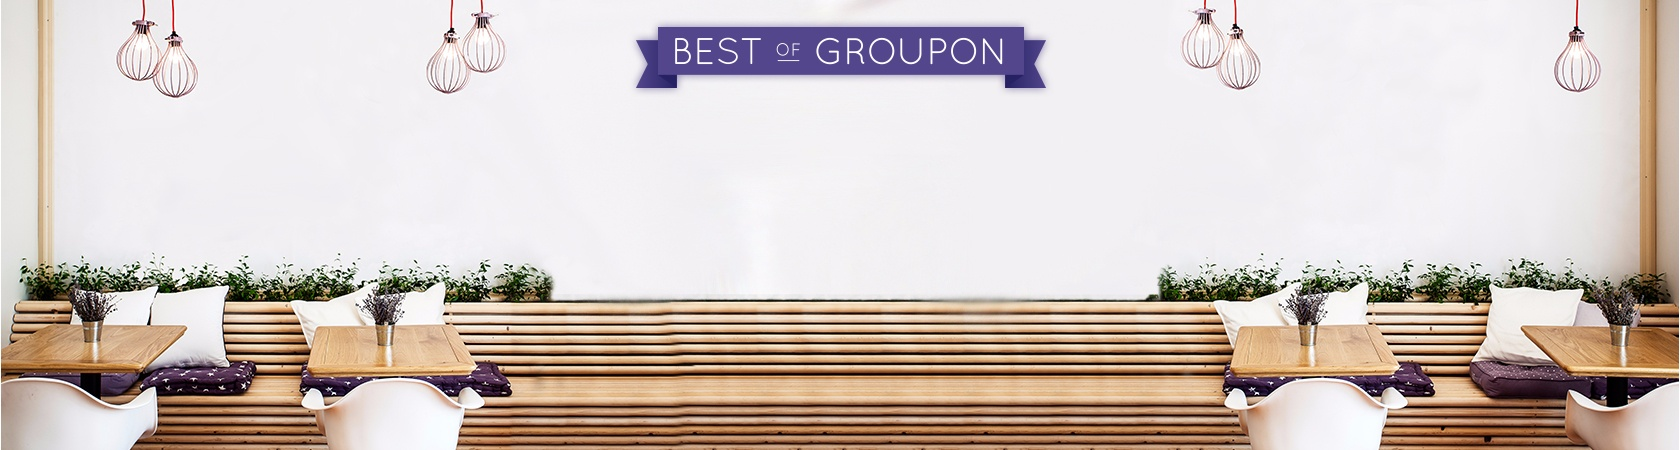 Best of Groupon